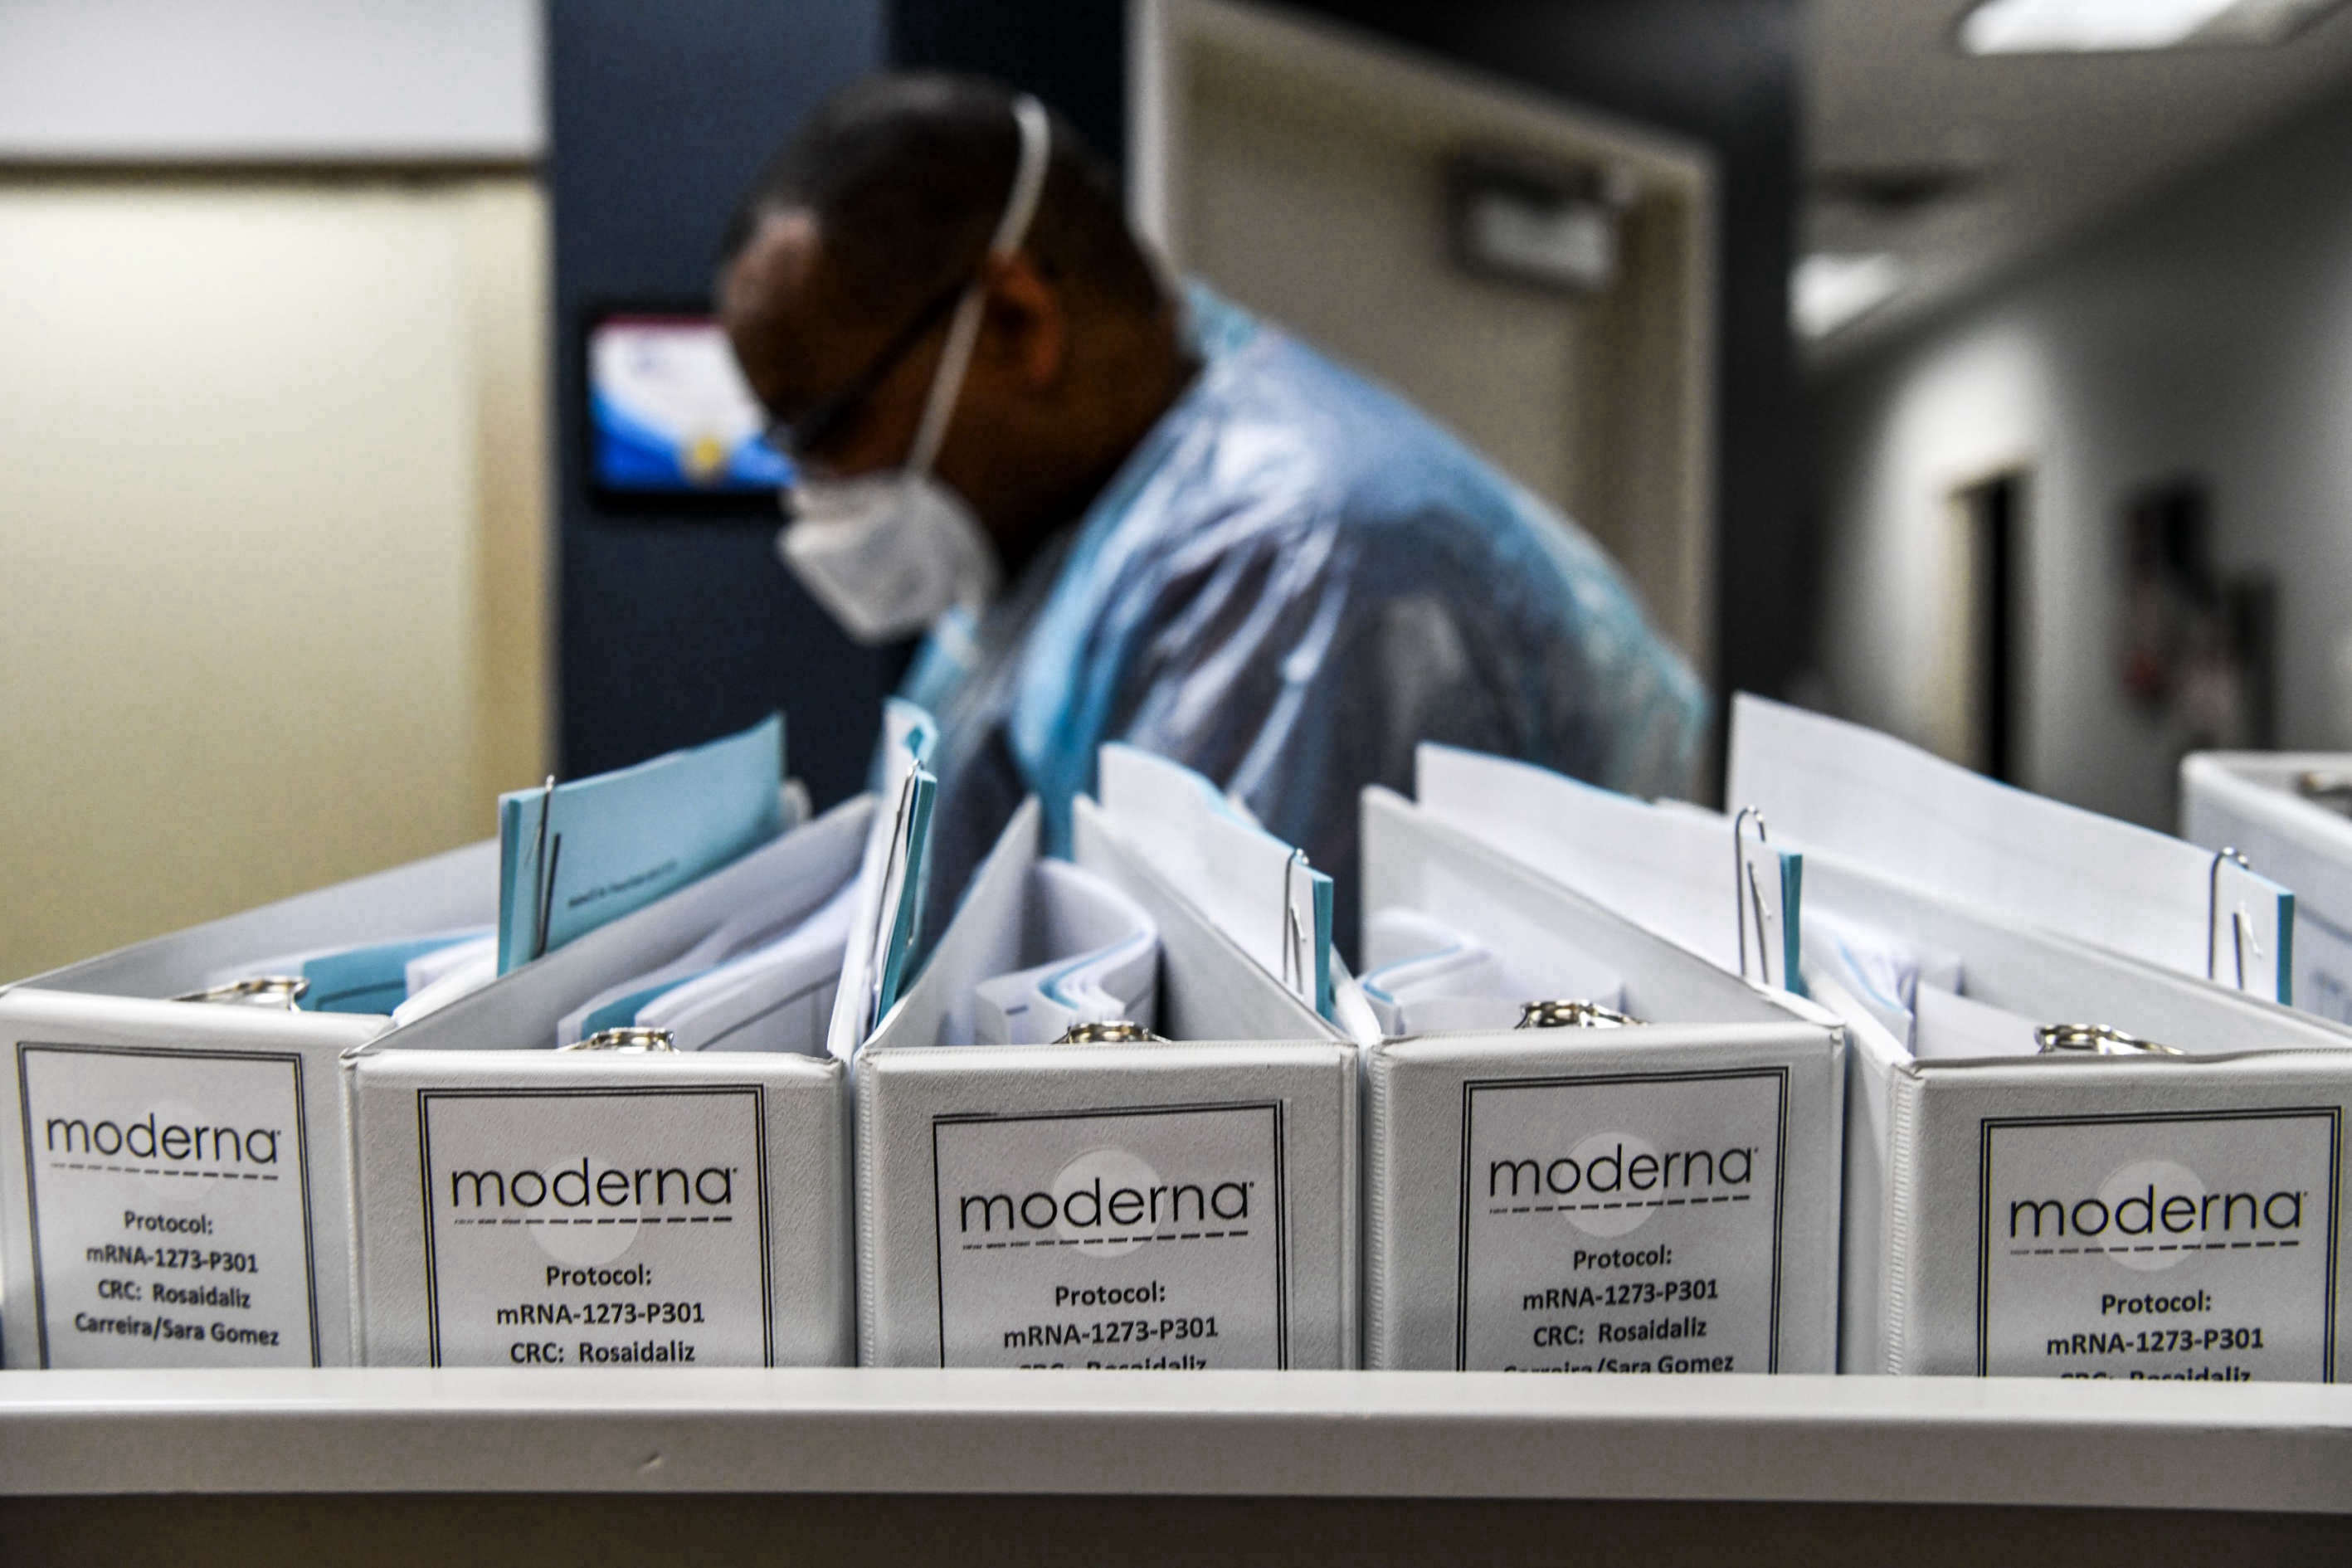 Moderna applies for FDA authorization for its Covid-19 vaccine